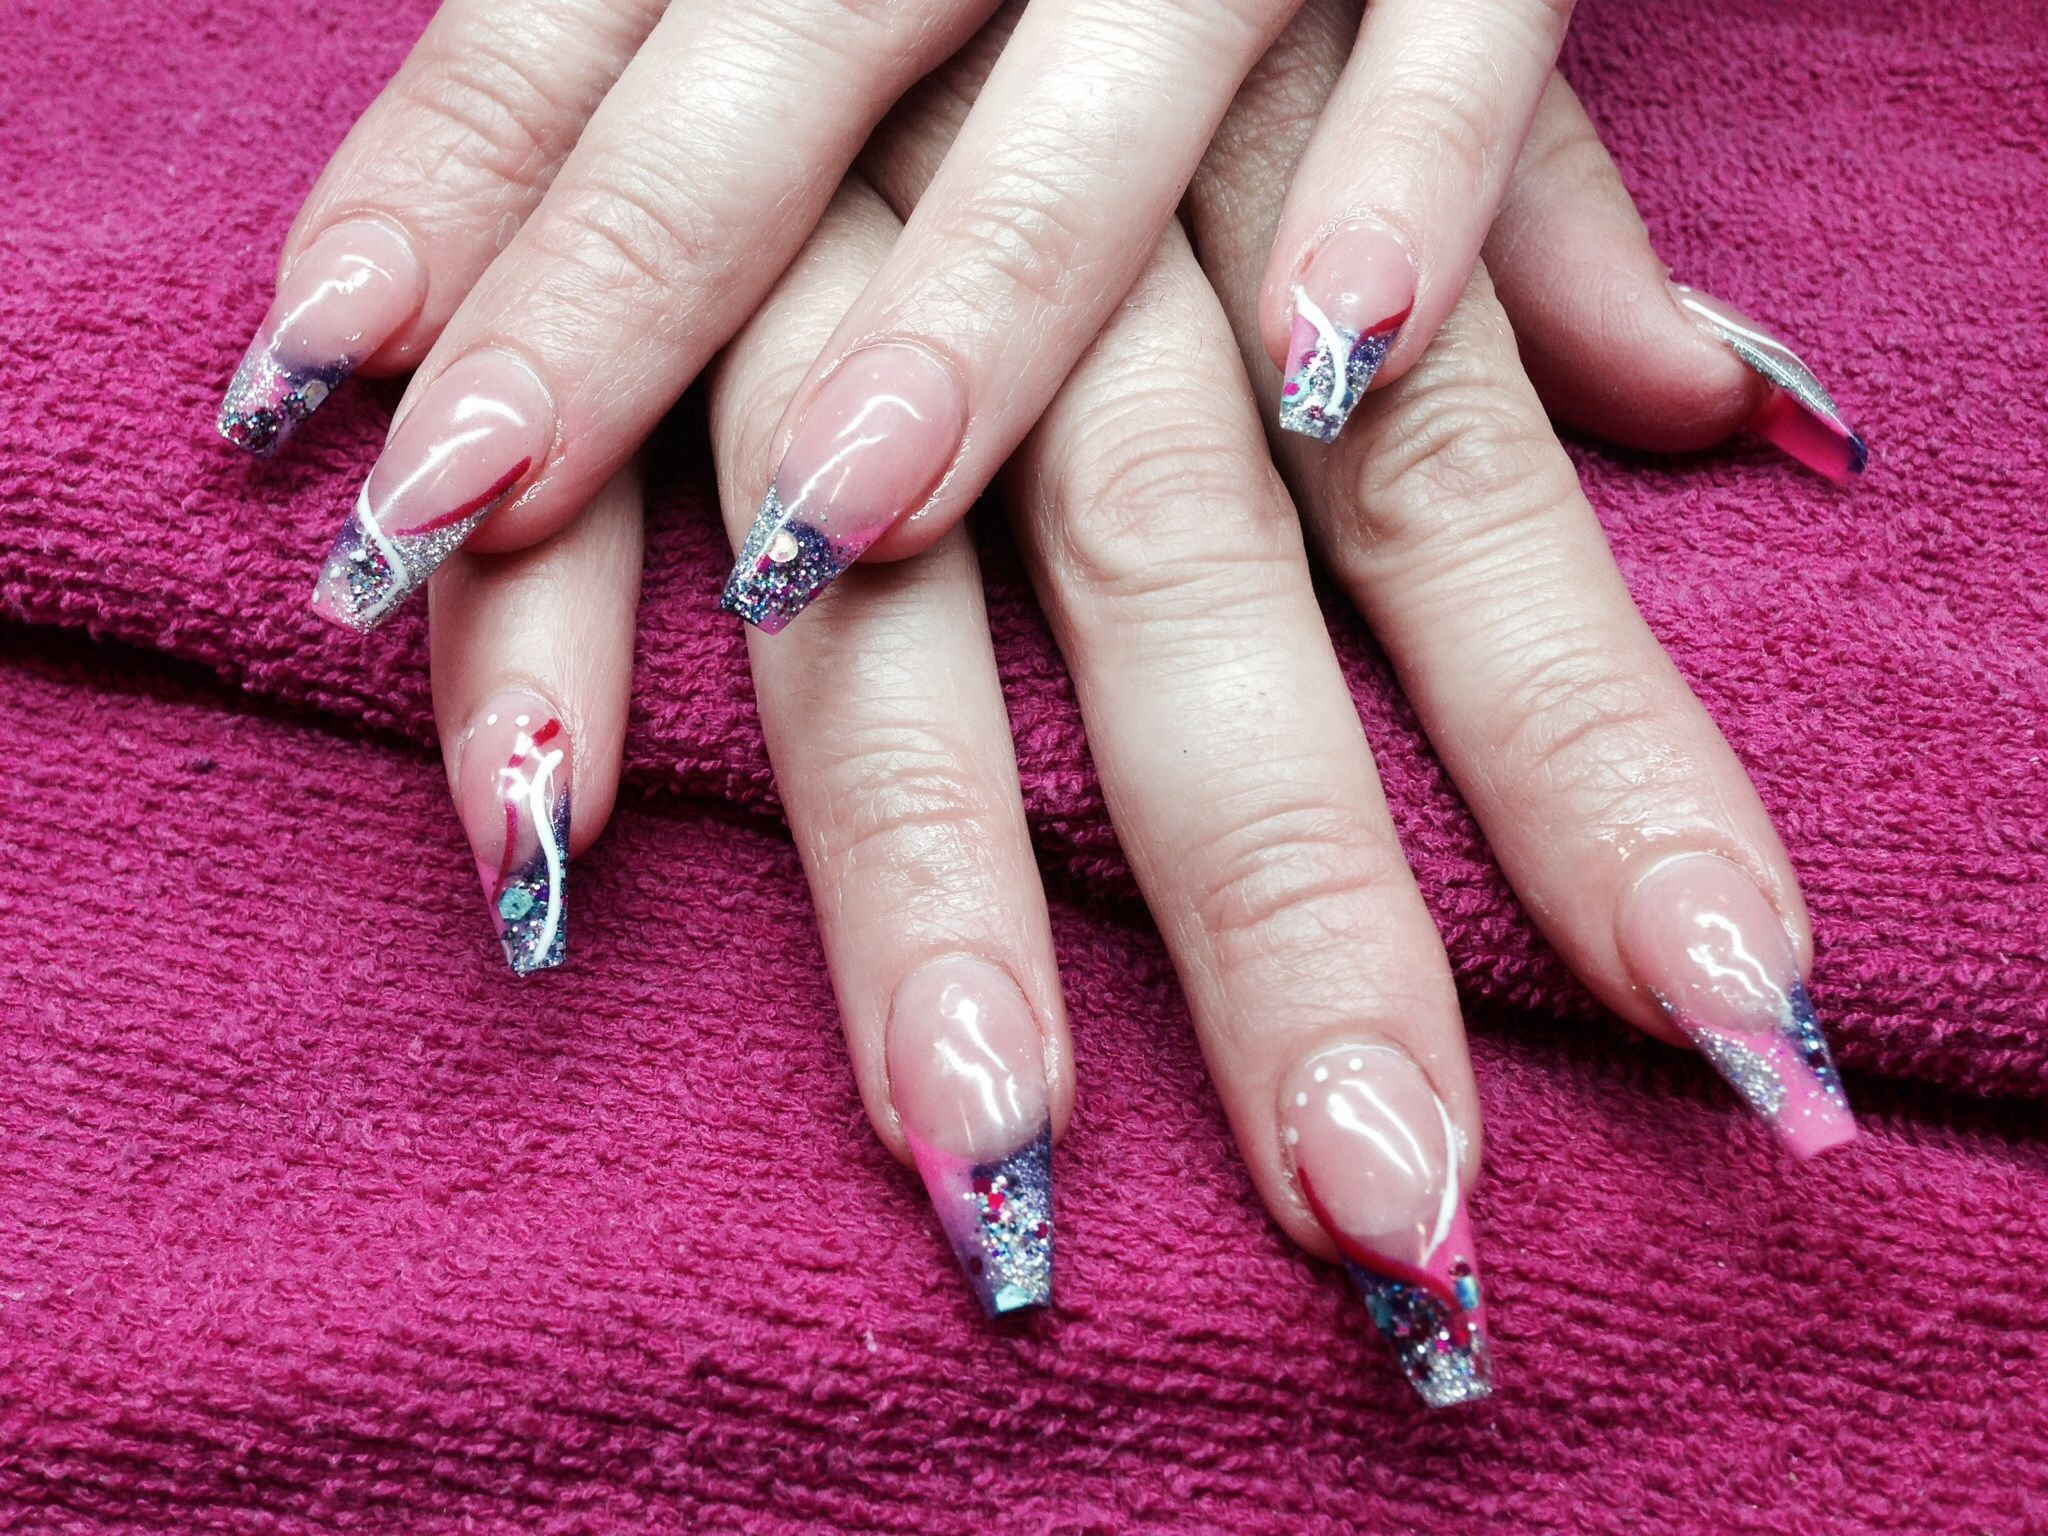 Sculpted nails   Nails by deedee   Pinterest   Nails